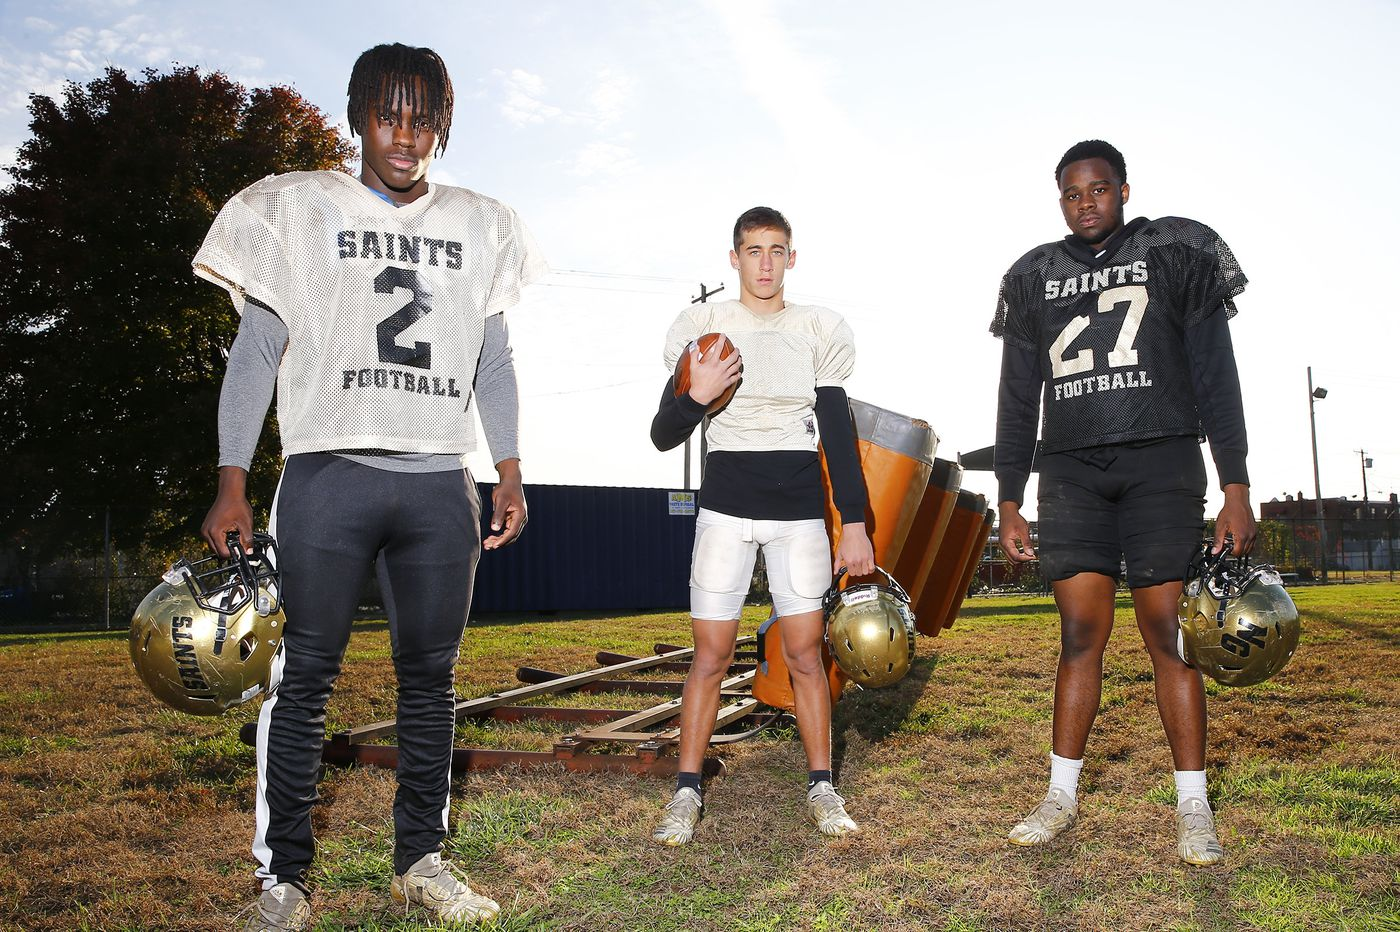 Neumann-Goretti's football success has special meaning to these seniors